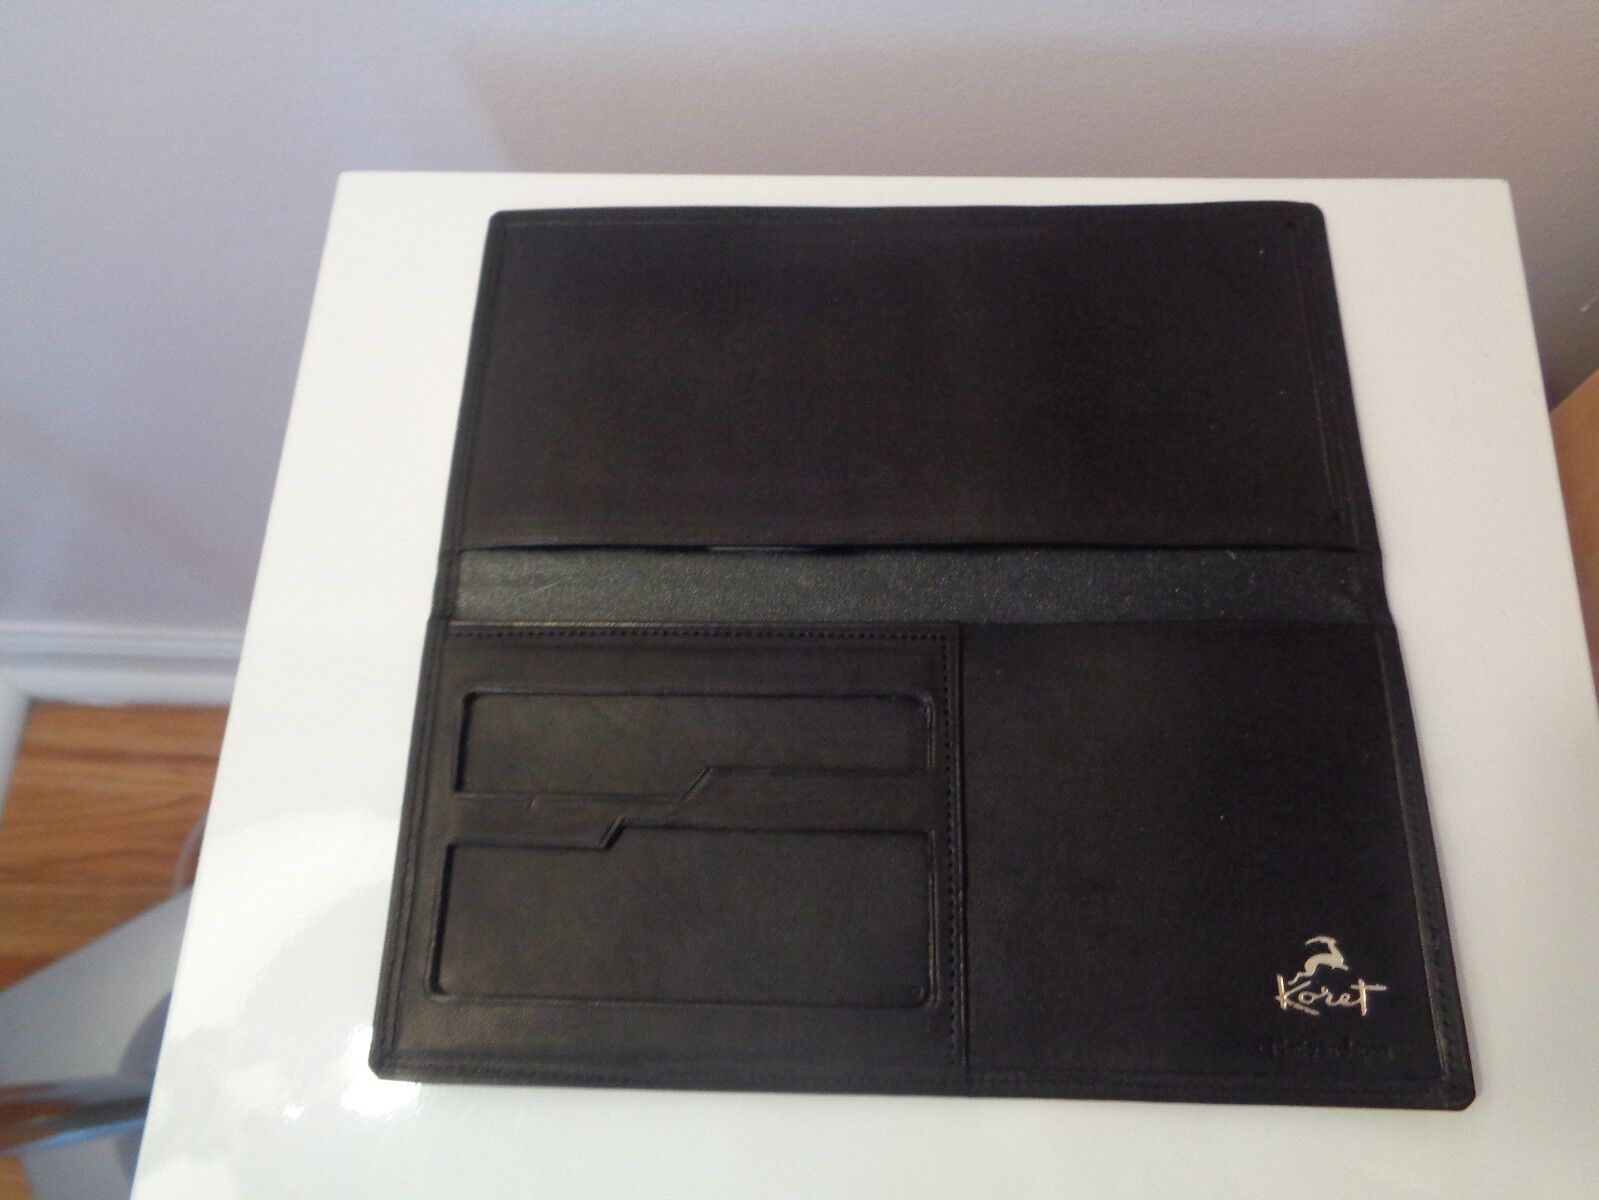 NEW IN BOX GENUINE LEATHER CHECKBOOK, MONEY, CREDIT CARD, ID HOLDER WALLET